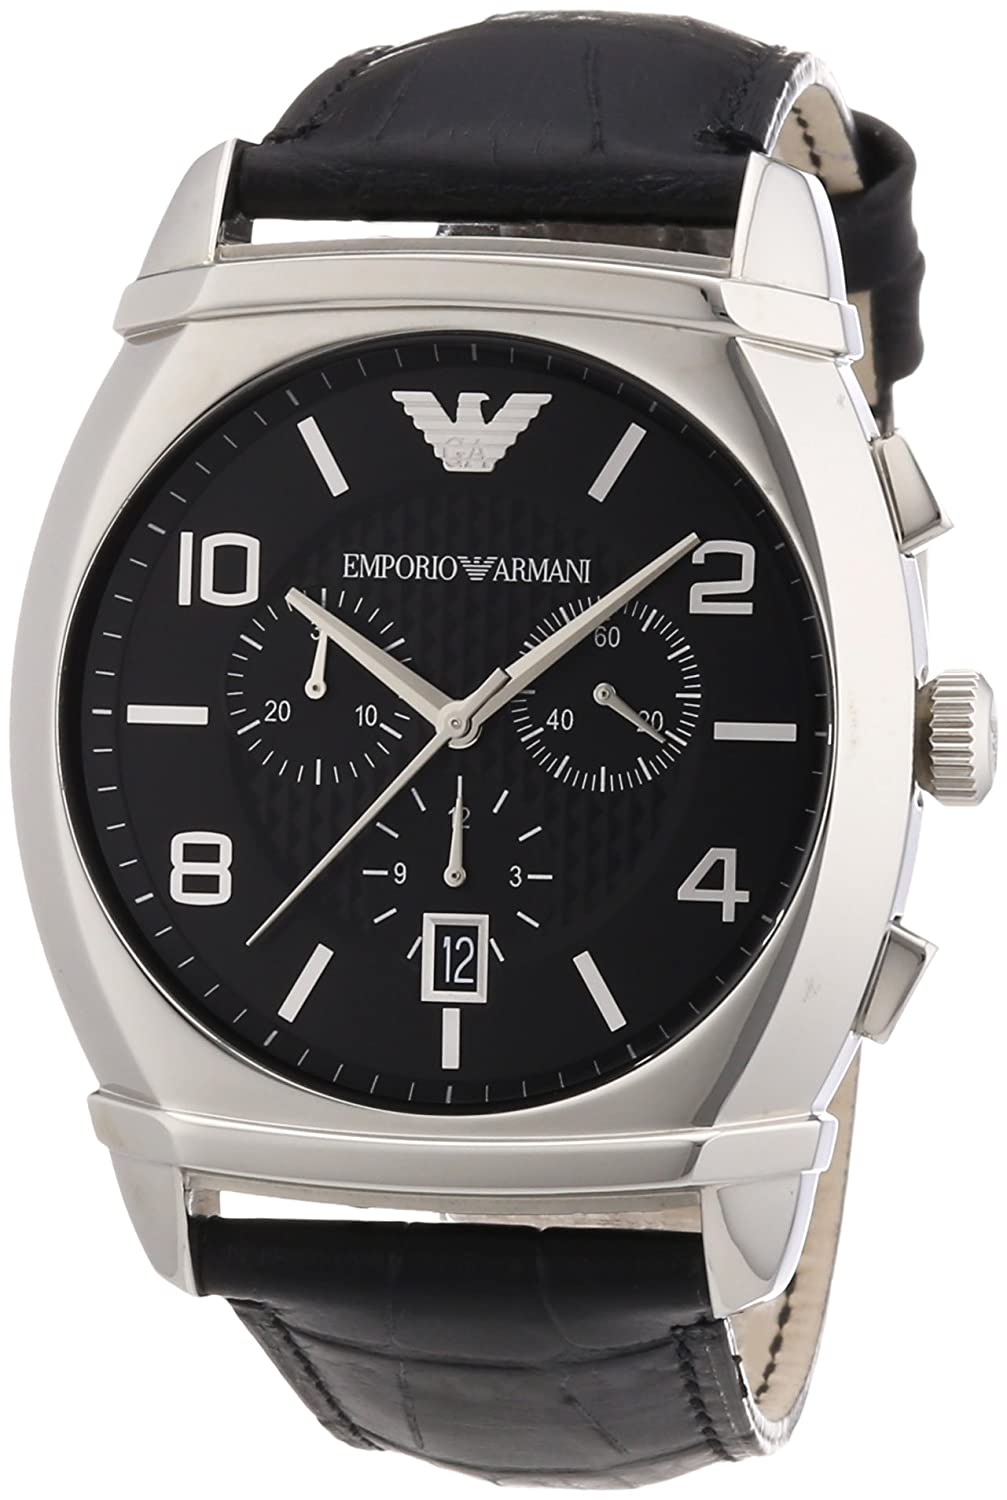 Amazon.com: Emporio Armani Mens AR0347 Classic Black Chronograph Dial Watch: Emporio Armani AR0347: Watches